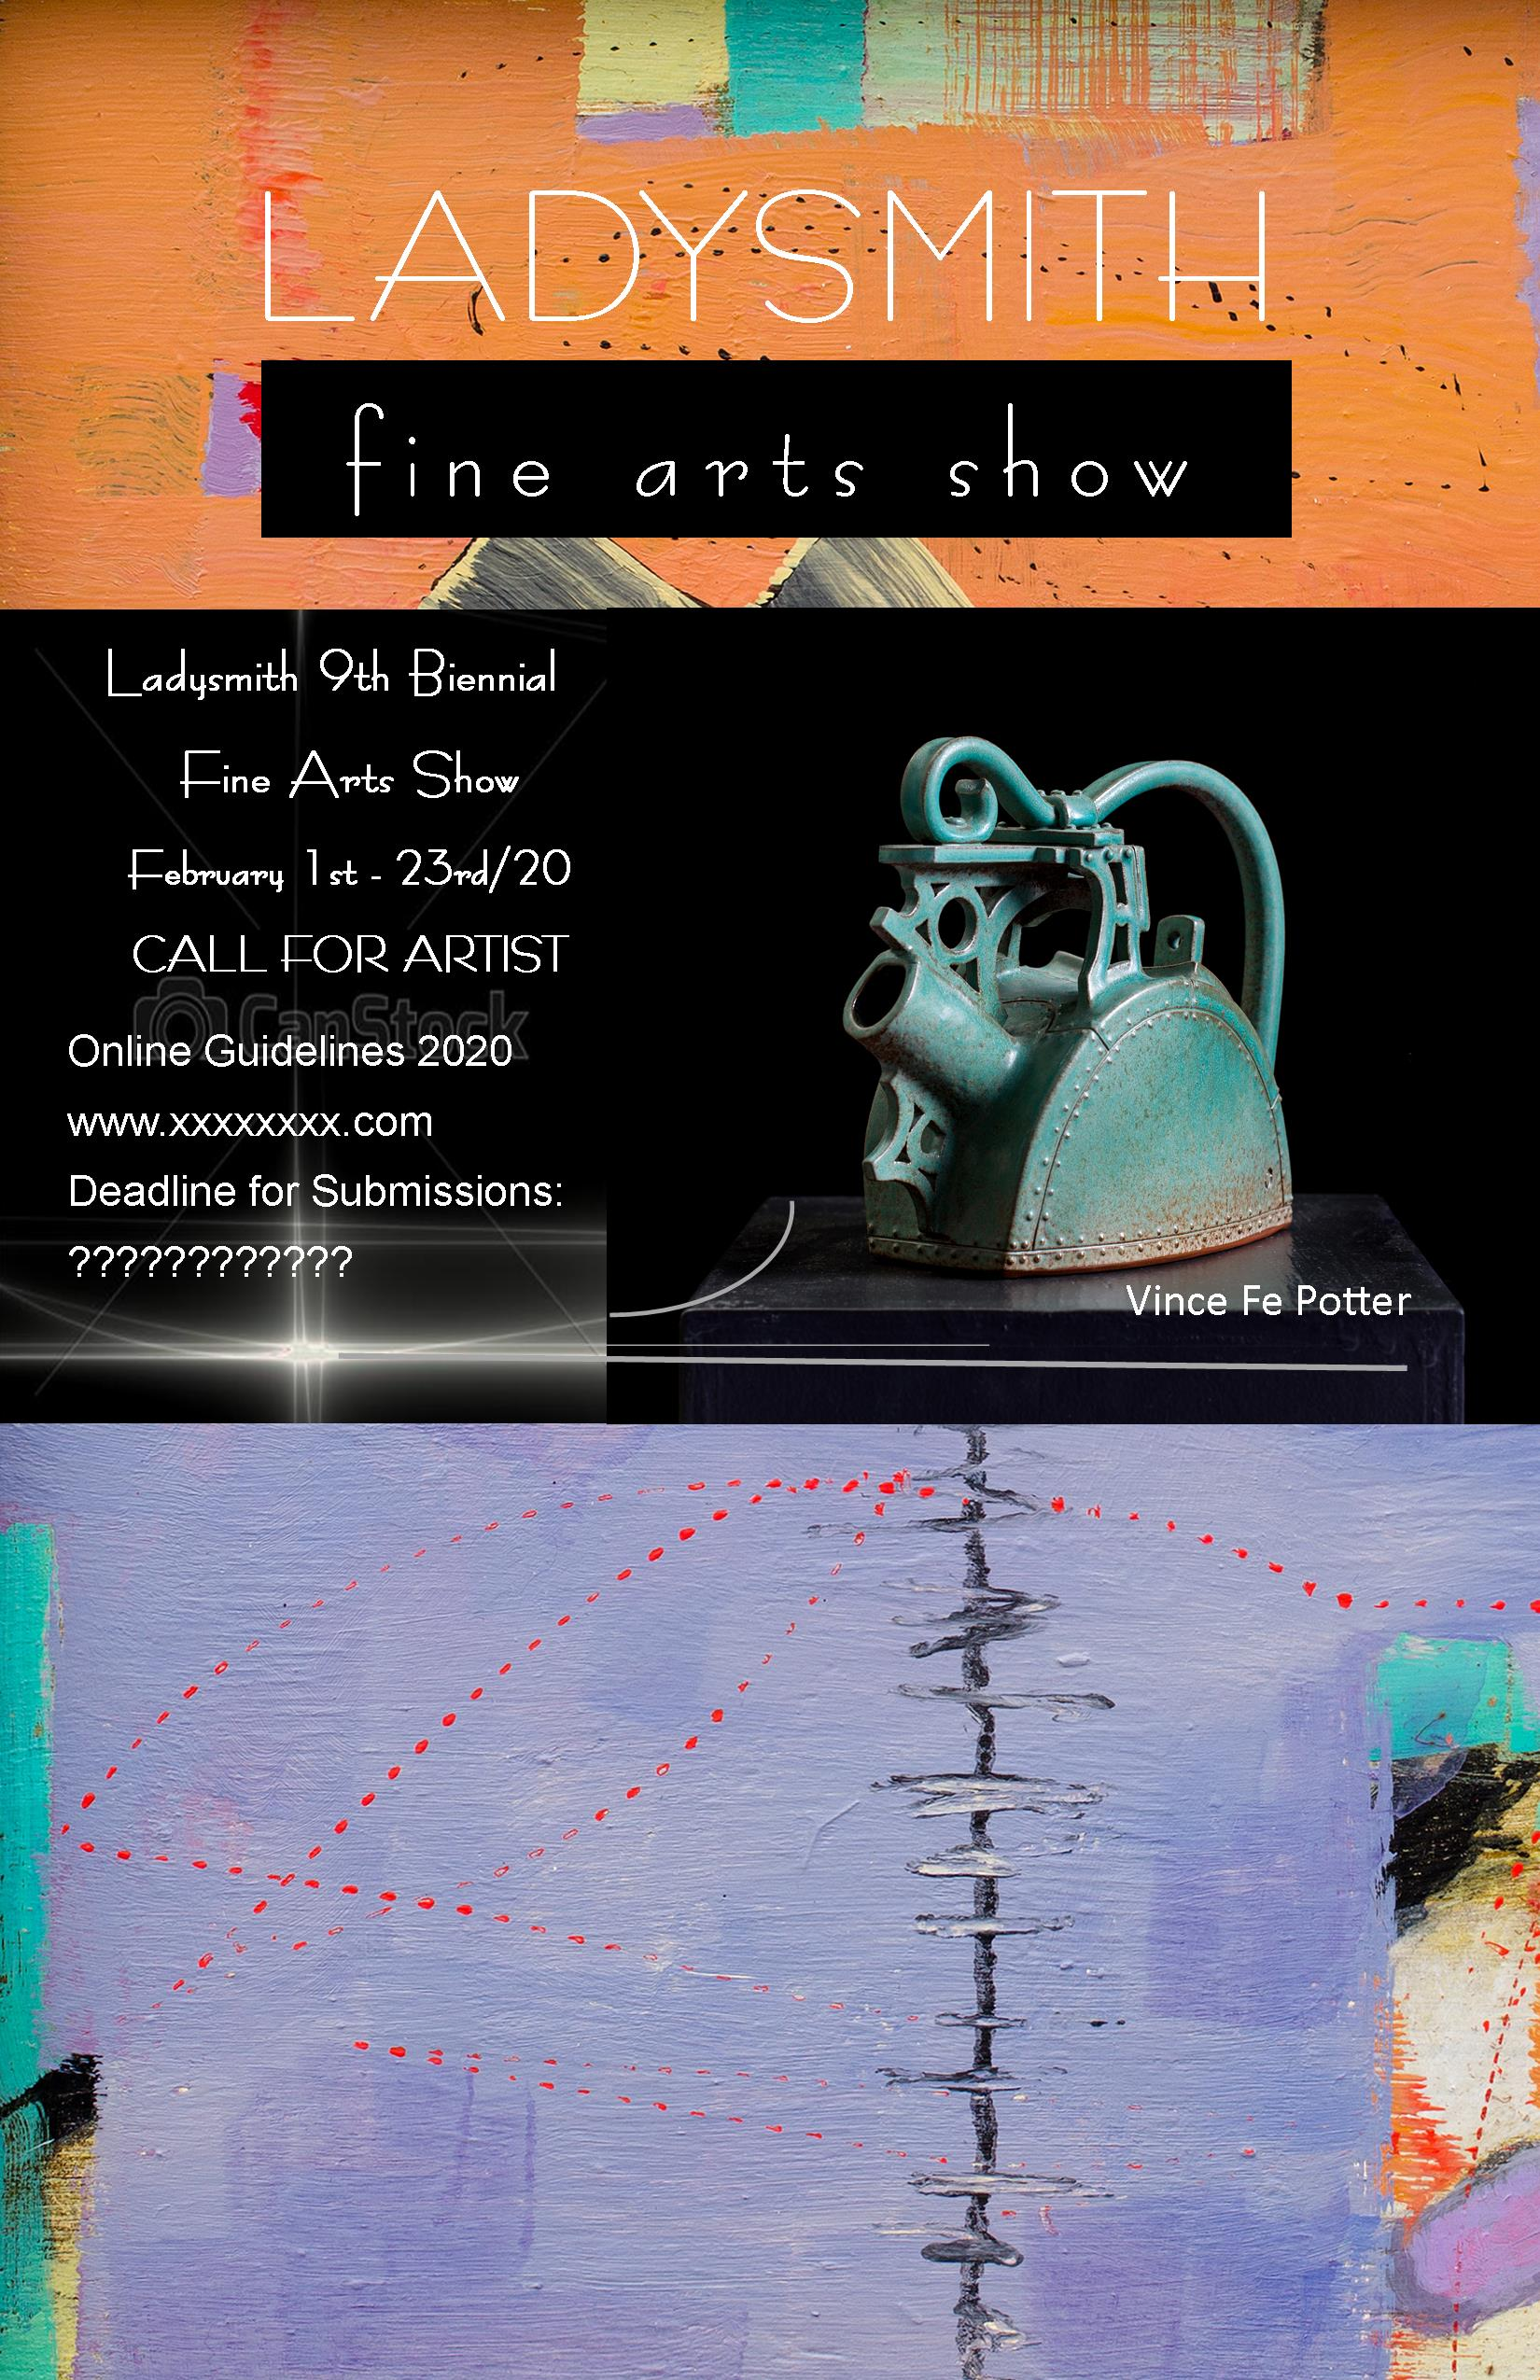 The 2020 Call for Artists is currently open - The Arts Council of Ladysmith and District and the Ladysmith Waterfront Gallery invite established and emerging artists living and working on Vancouver Island and the Gulf Islands to enter our 9th biennial Juried Show to be held at the Ladysmith Waterfront Gallery February 1 - 24th 2018.DEADLINE FOR ENTRIES: MIDNIGHT JANUARY 12TH, 2020